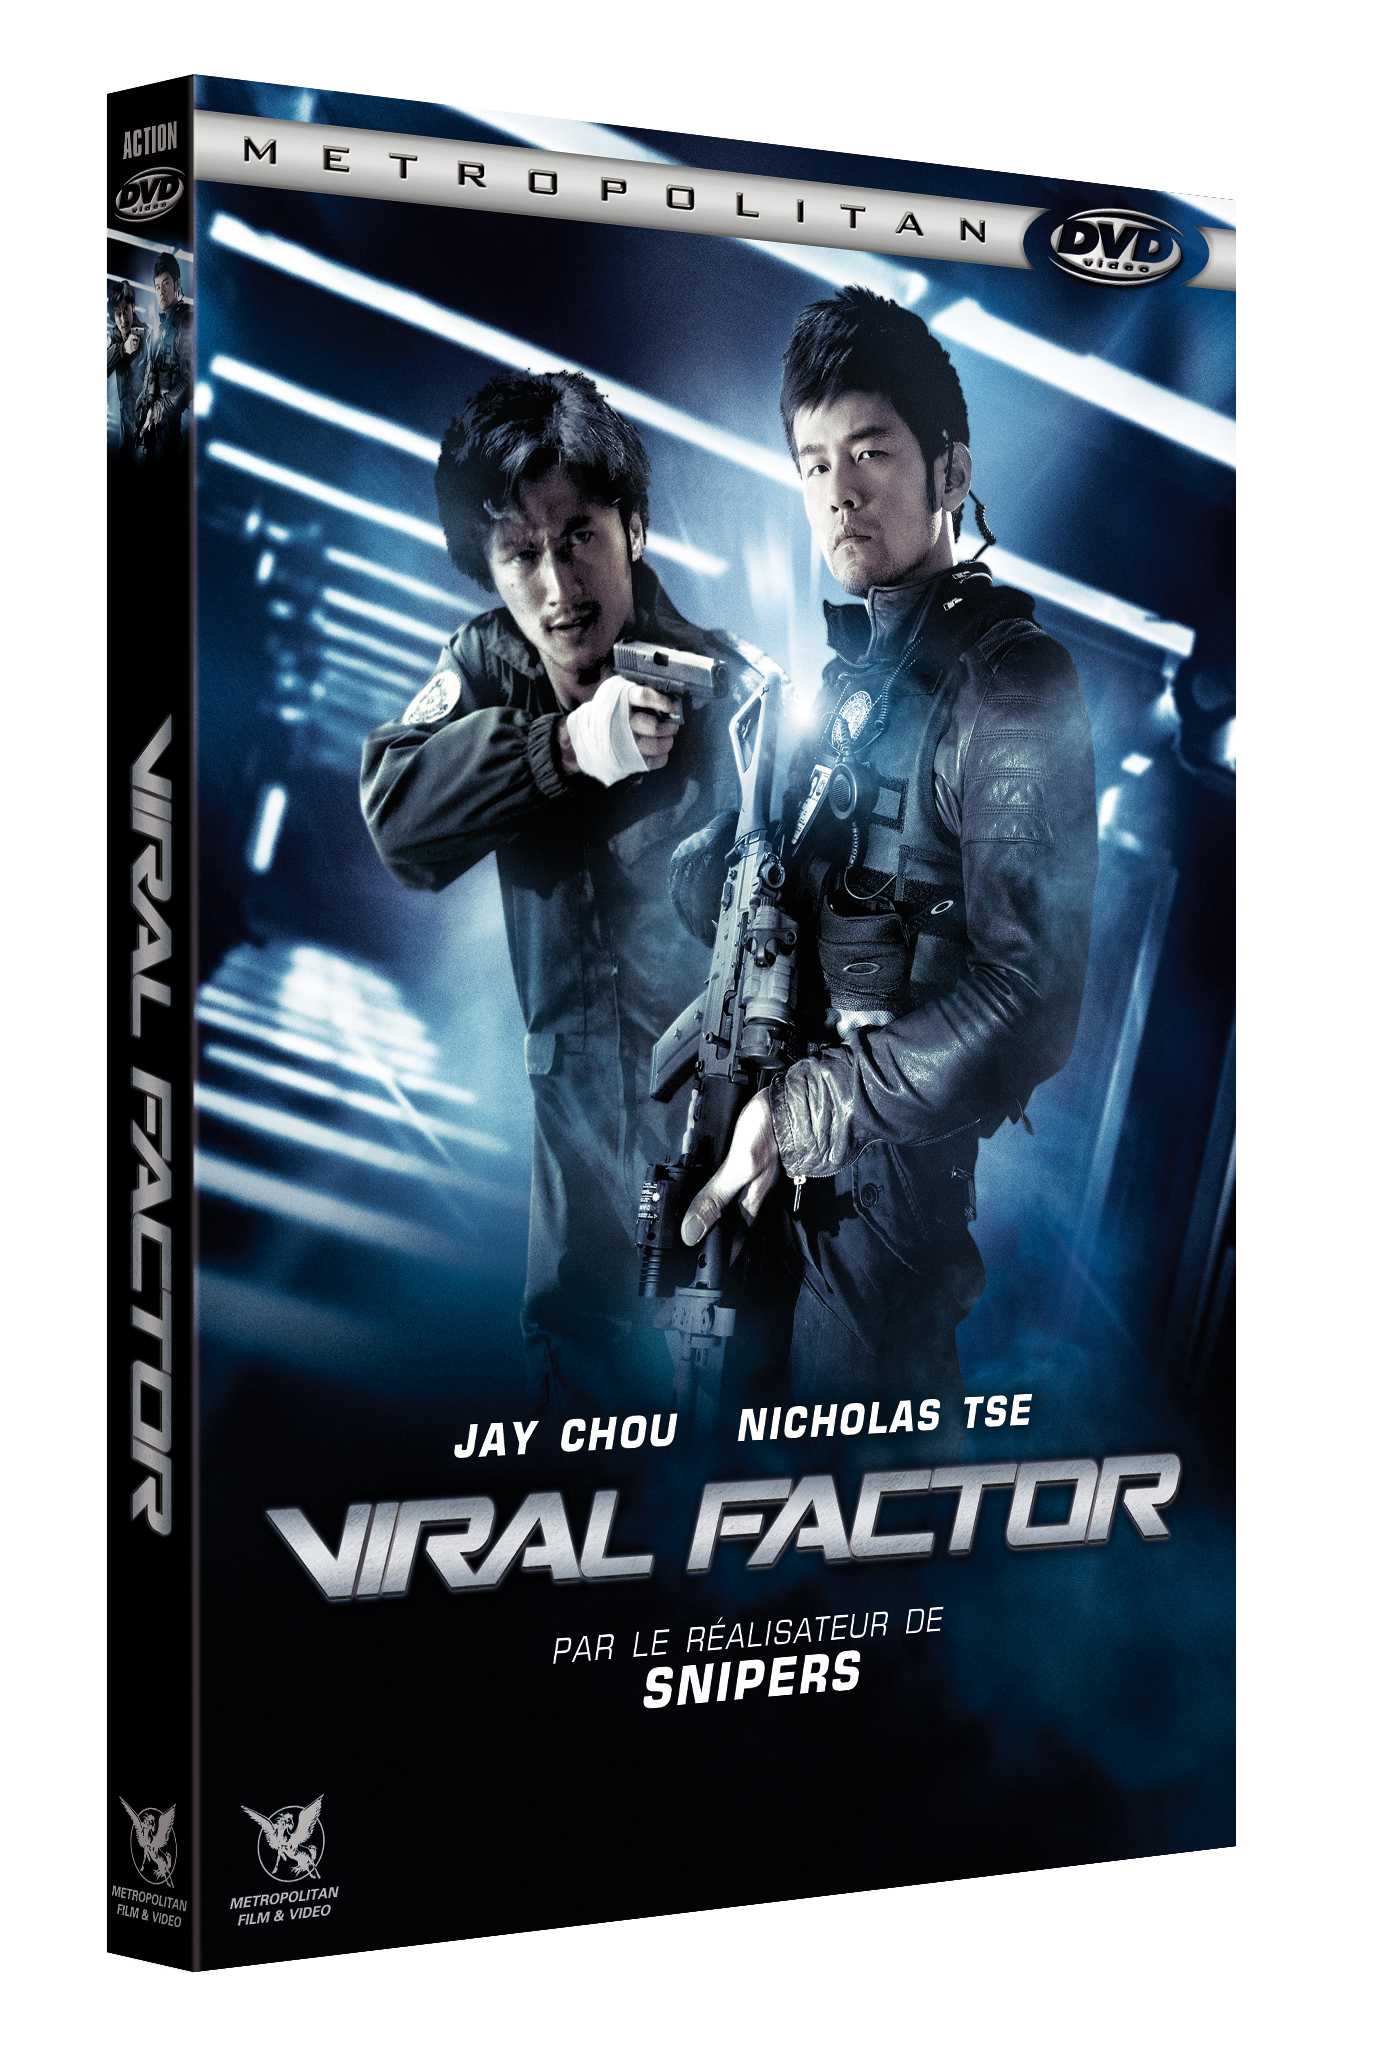 DVD VIRAL FACTOR 3D